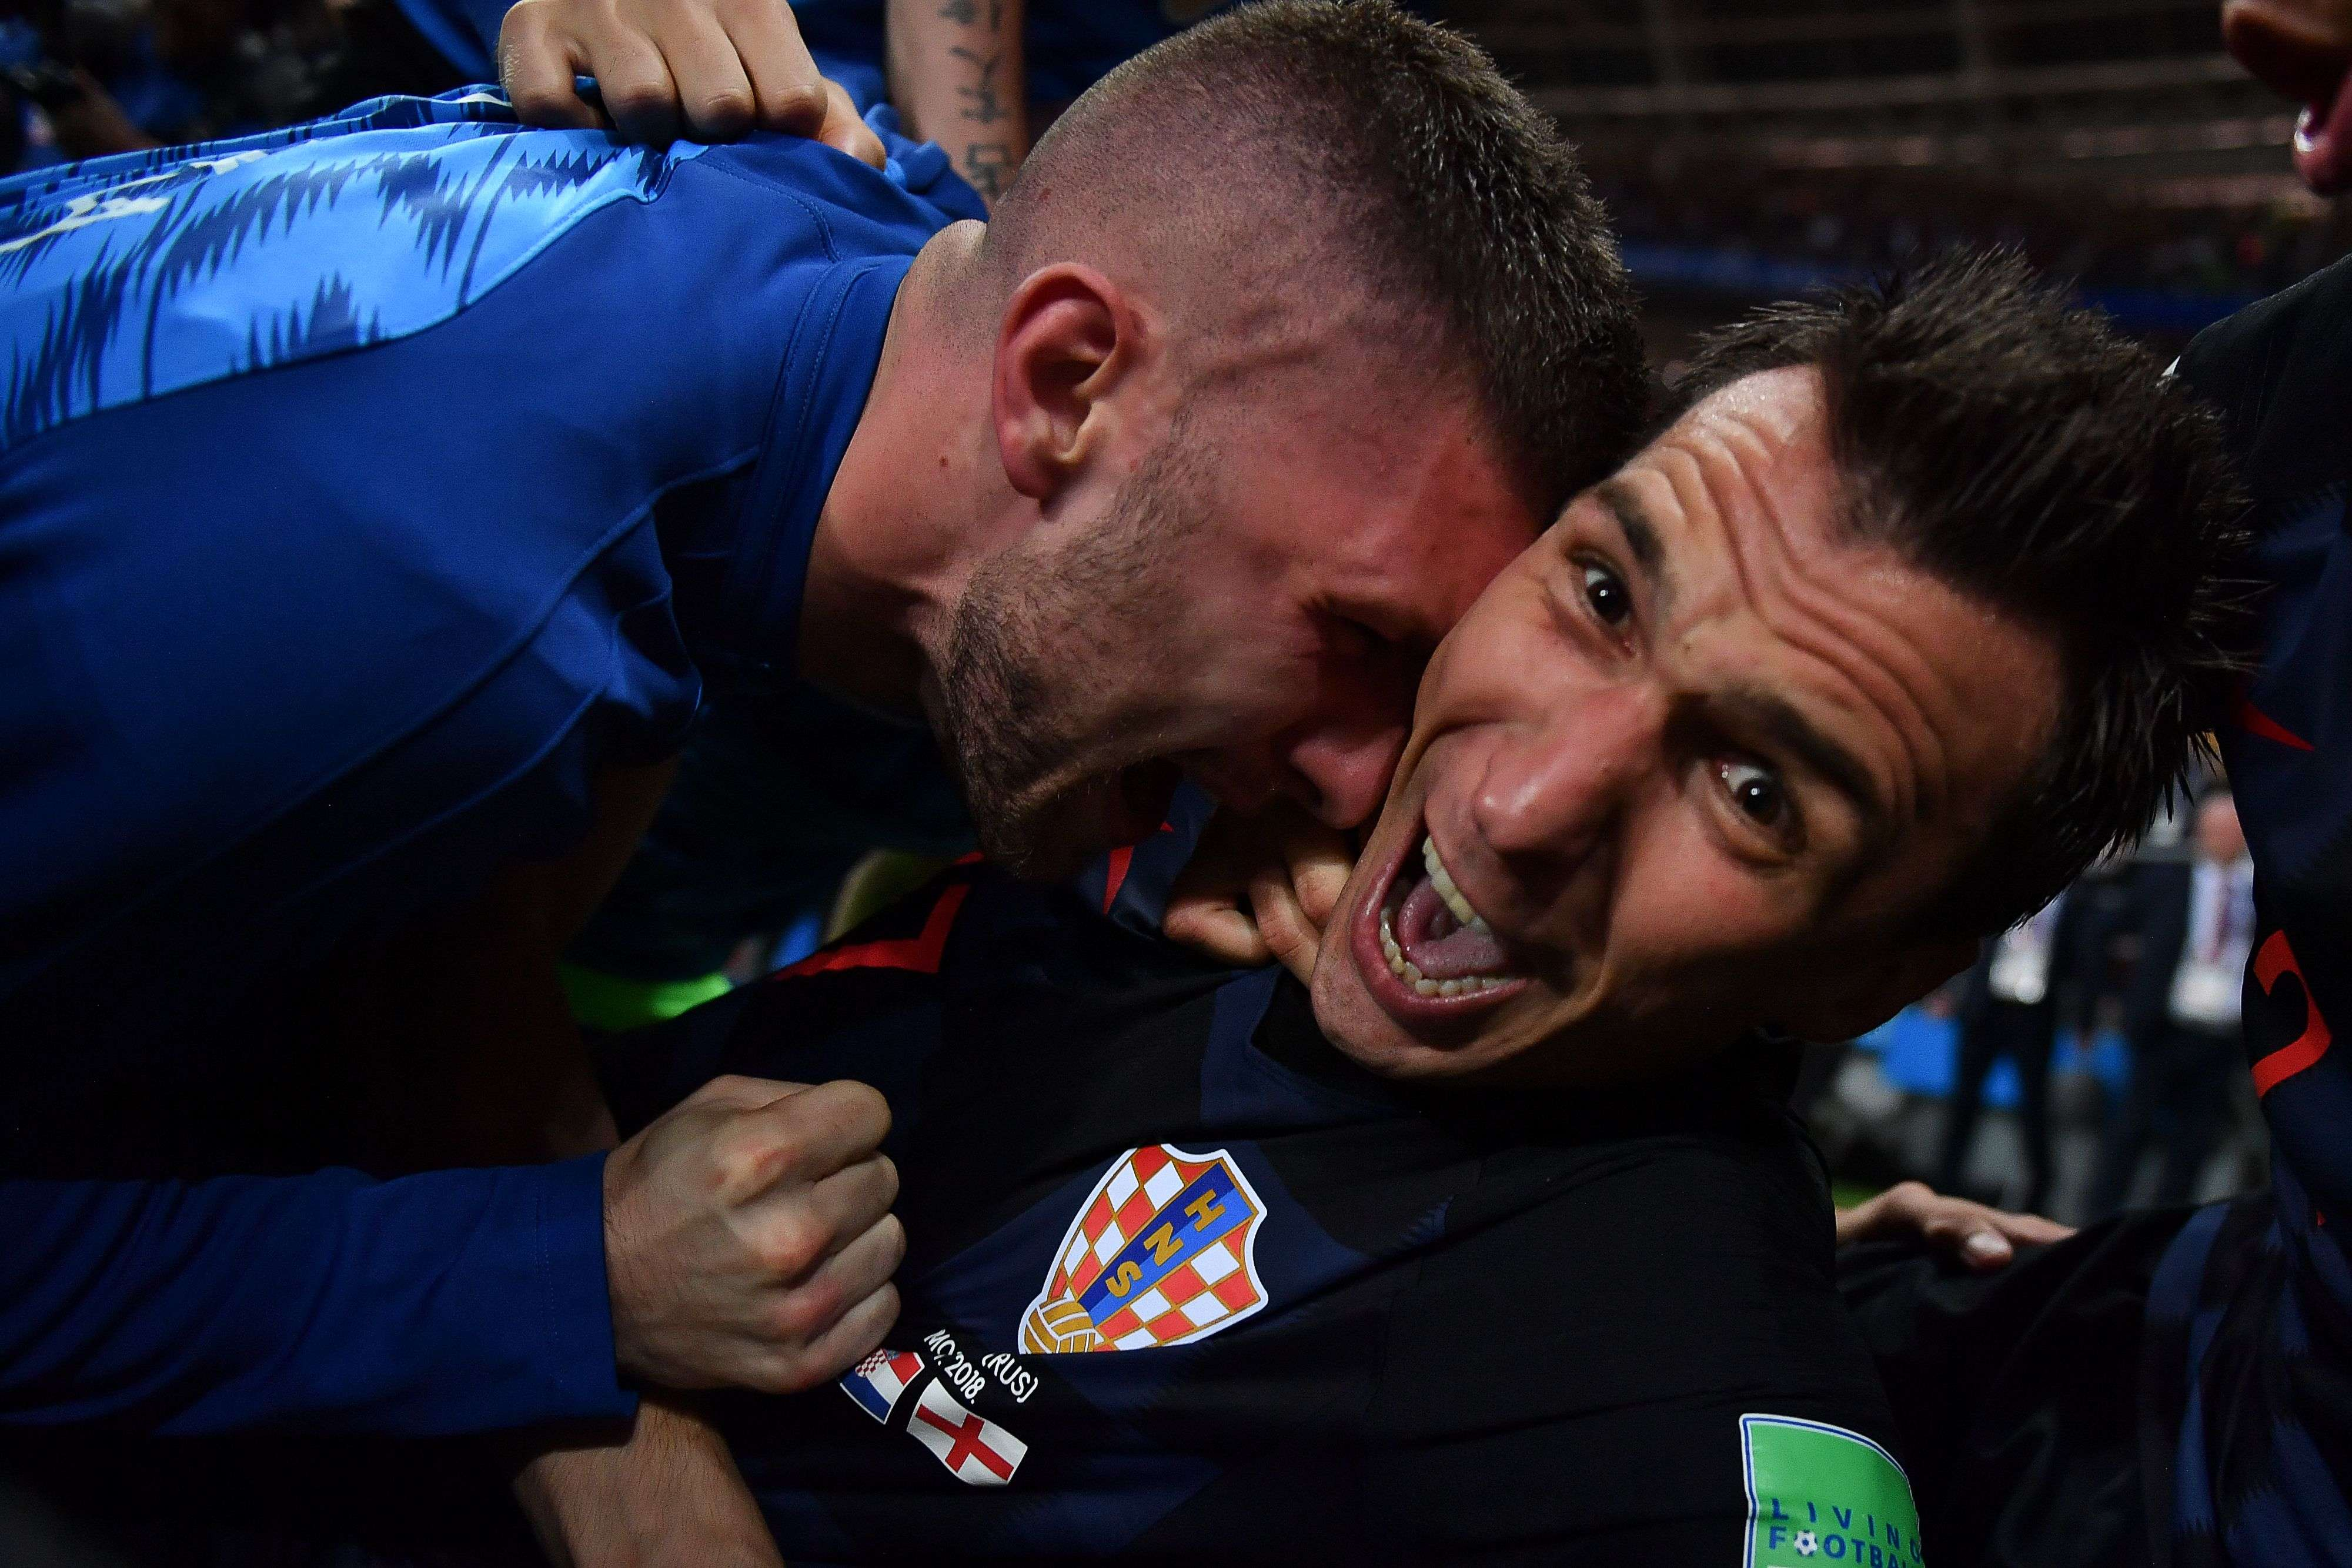 TOPSHOT - Croatia's forward Mario Mandzukic (R) celebrates with teammates after scoring his team's second goal during the Russia 2018 World Cup semi-final football match between Croatia and England at the Luzhniki Stadium in Moscow on July 11, 2018. RESTRICTED TO EDITORIAL USE - NO MOBILE PUSH ALERTS/DOWNLOADS